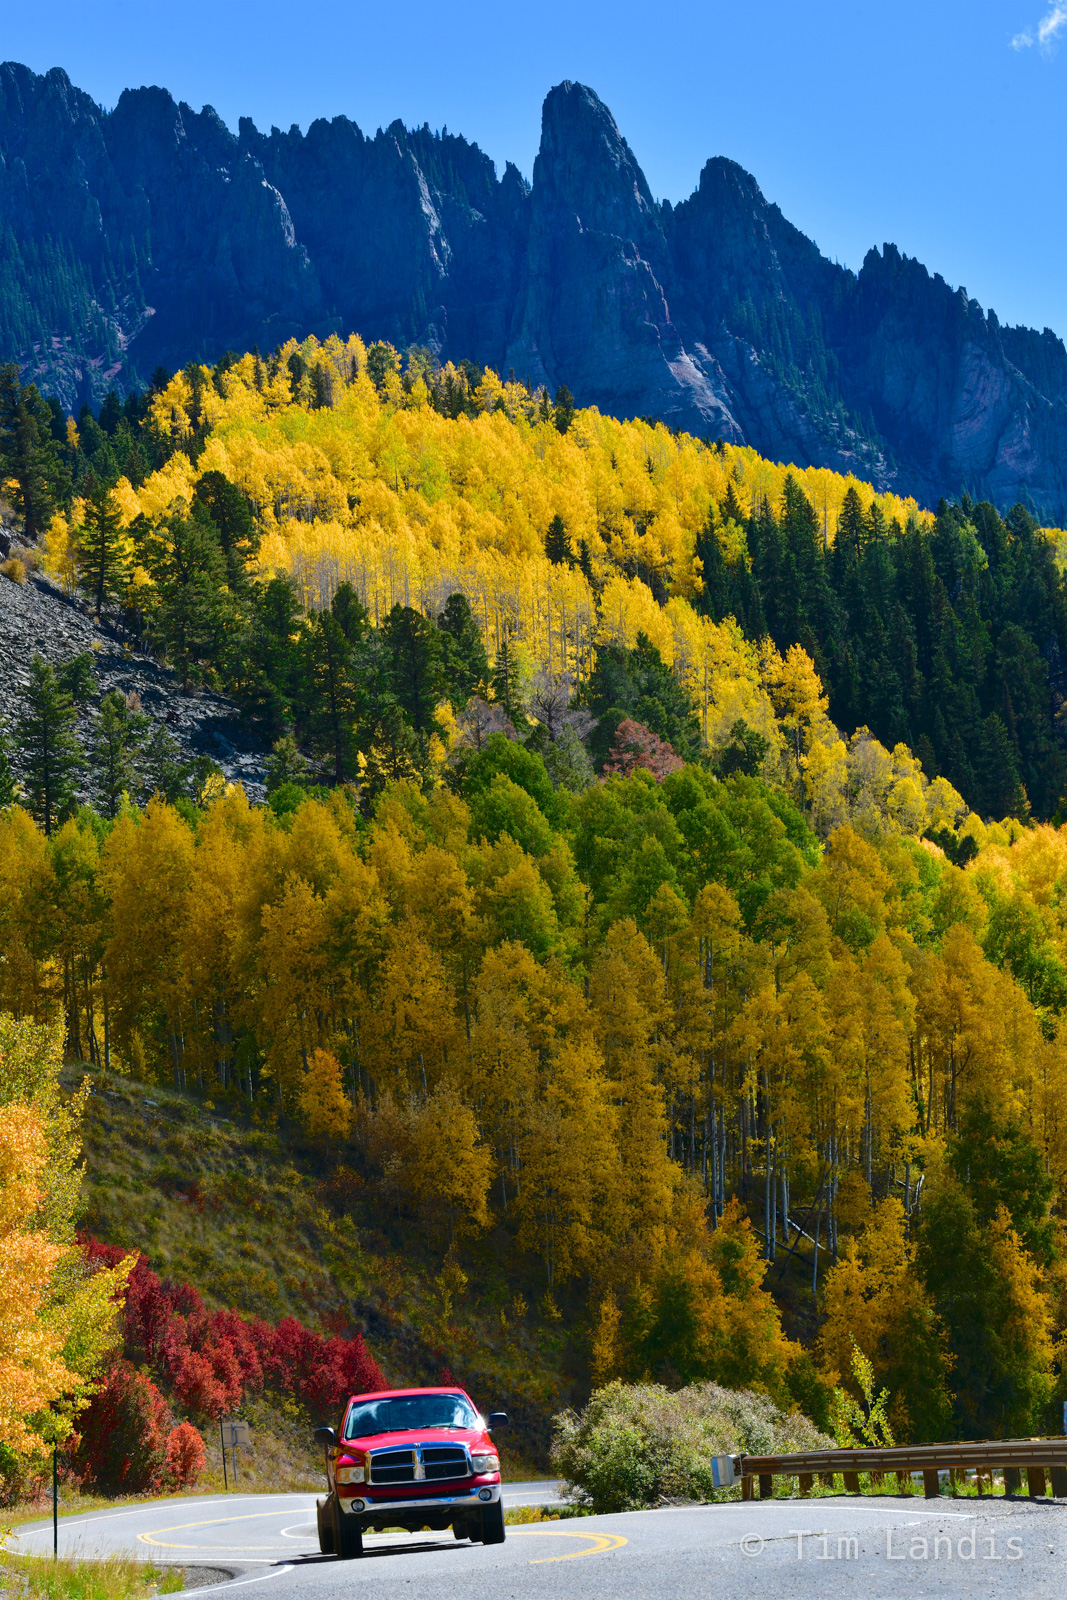 American highways, Red Truck, highways of America, red truck yellow aspens, photo